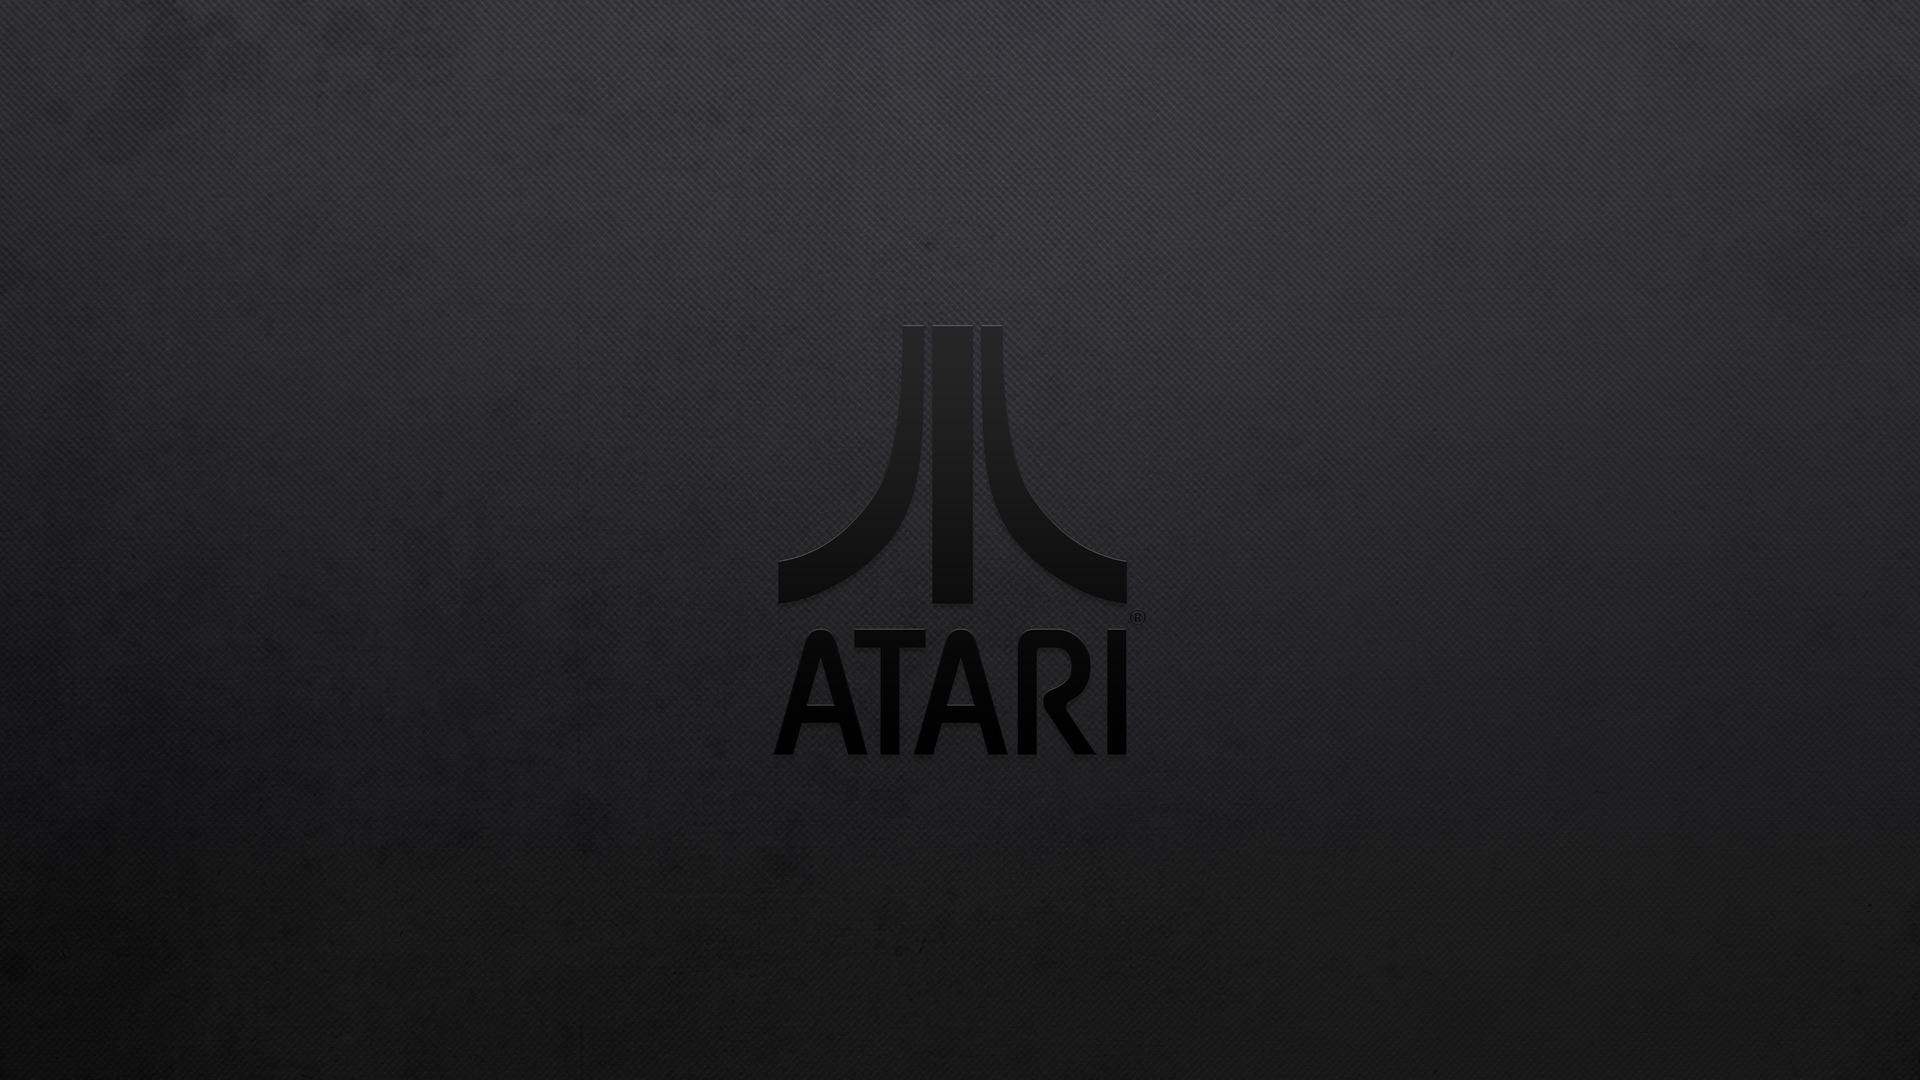 Free Atari Logo Wallpaper